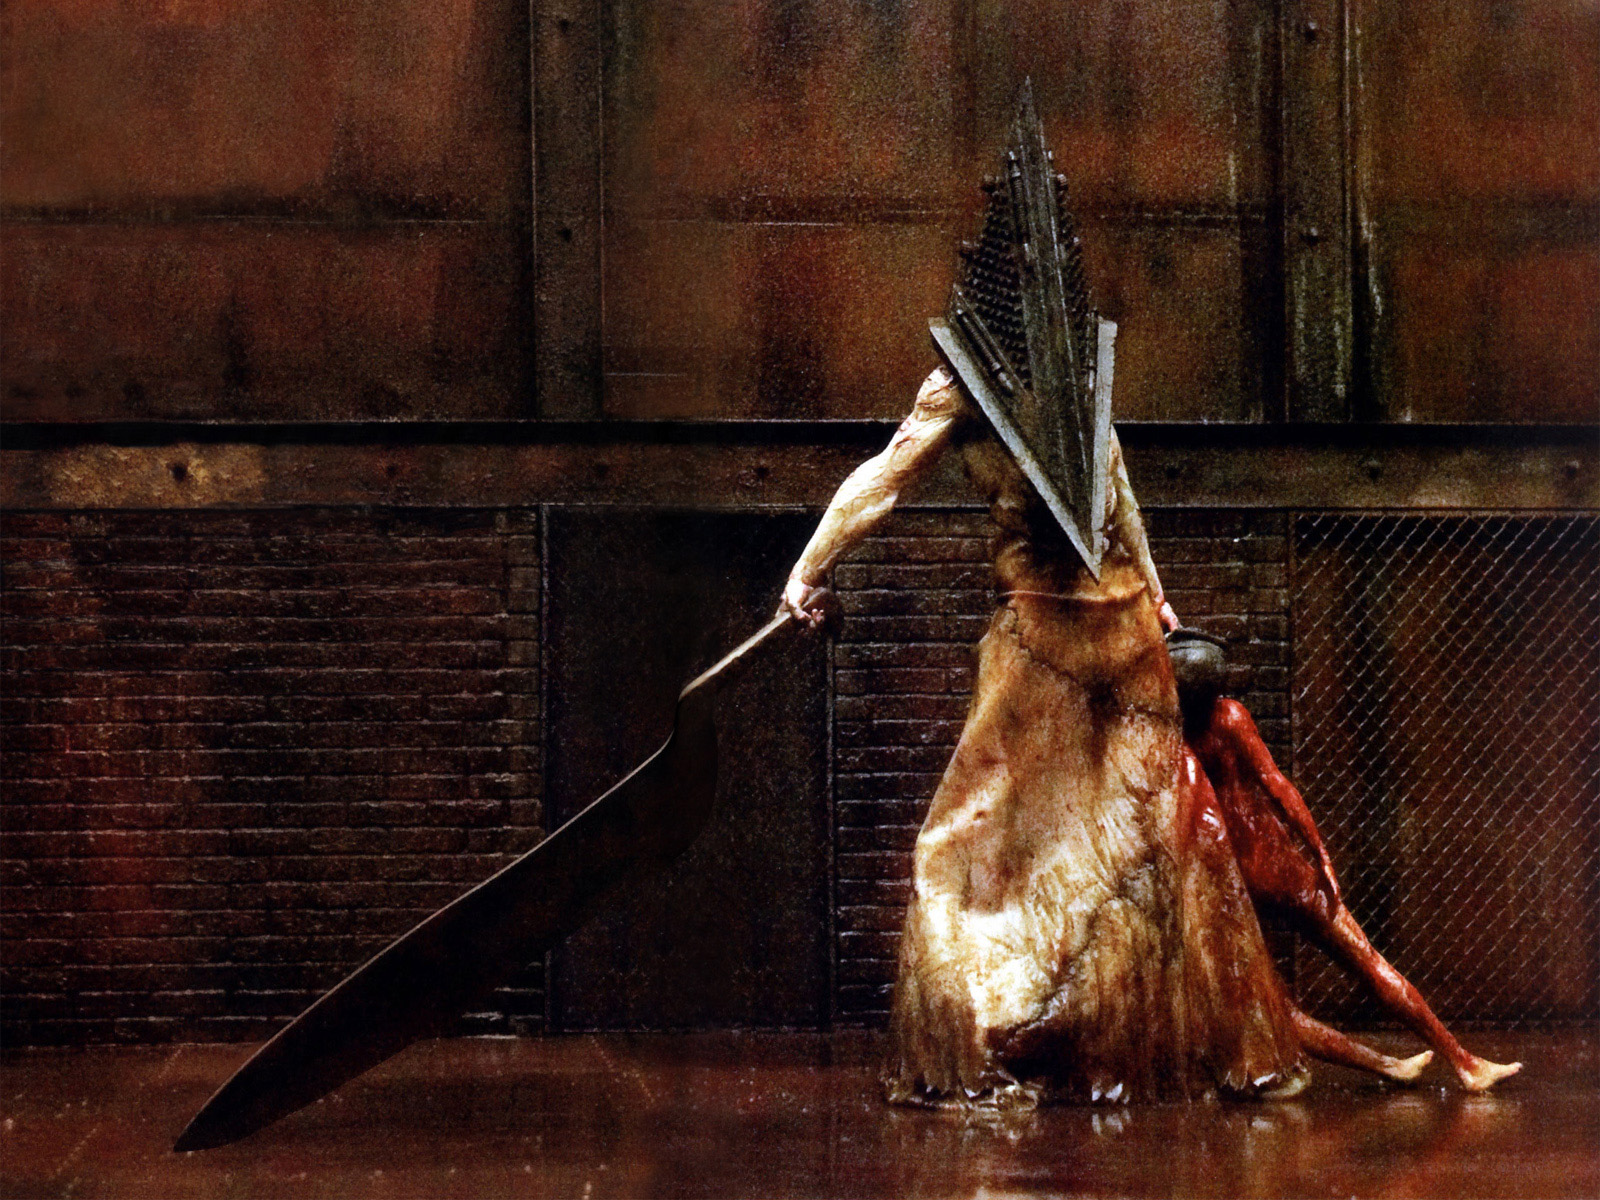 Silent Hill - Pyramid Head 1600x1200 wallpapers download - Desktop ...